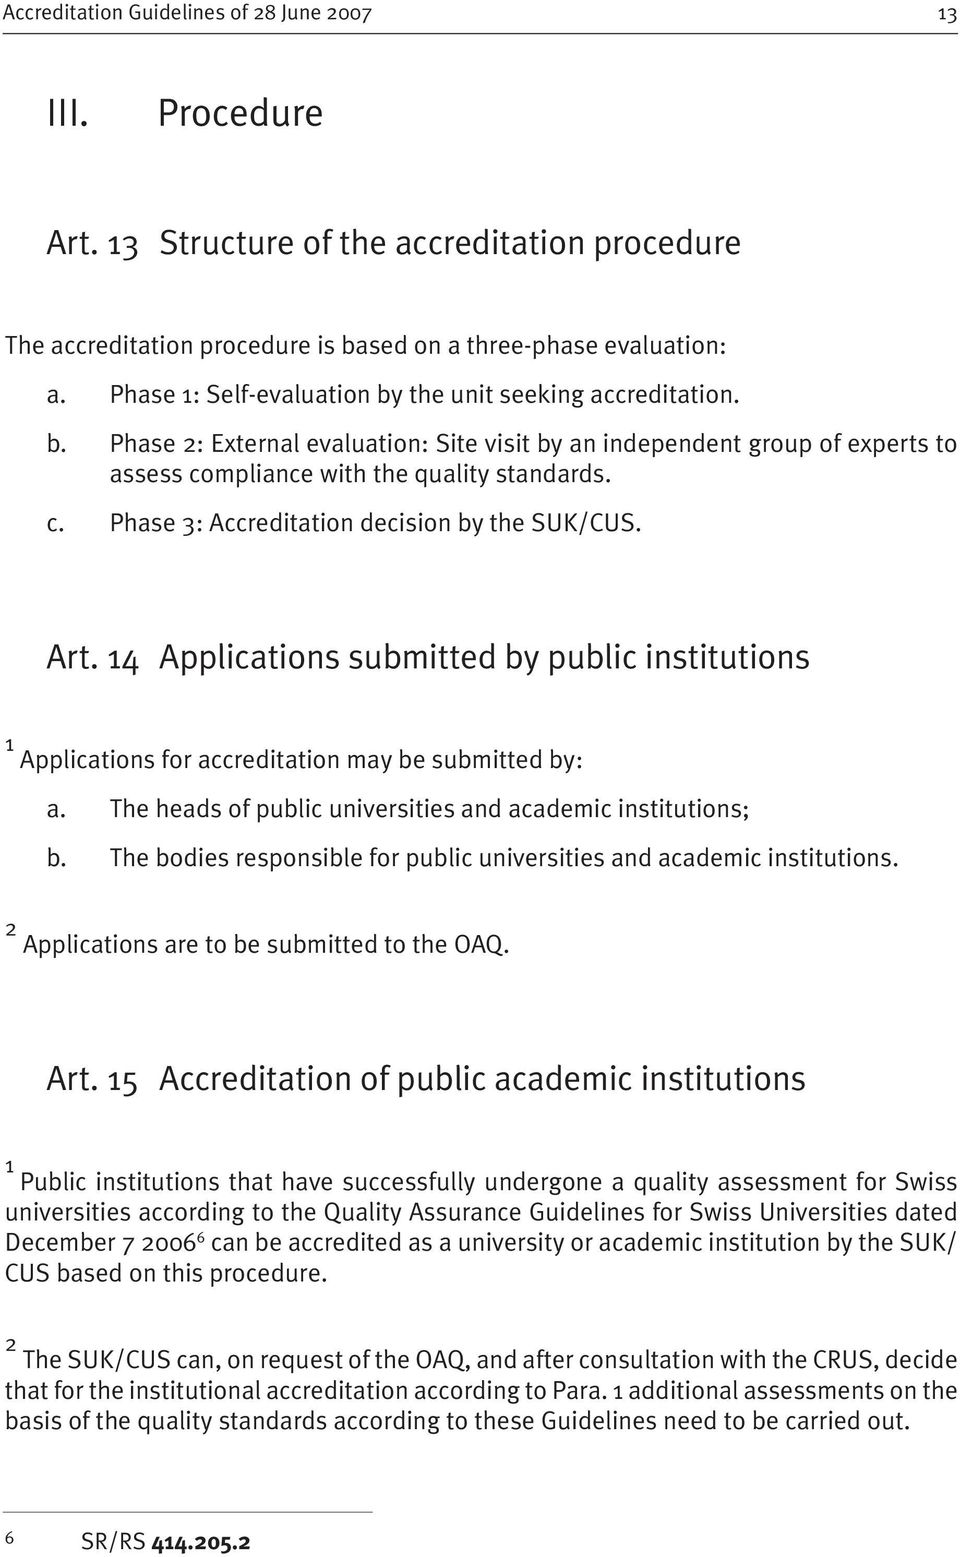 Art. 14 Applications submitted by public institutions 1 Applications for accreditation may be submitted by: a. The heads of public universities and academic institutions; b.